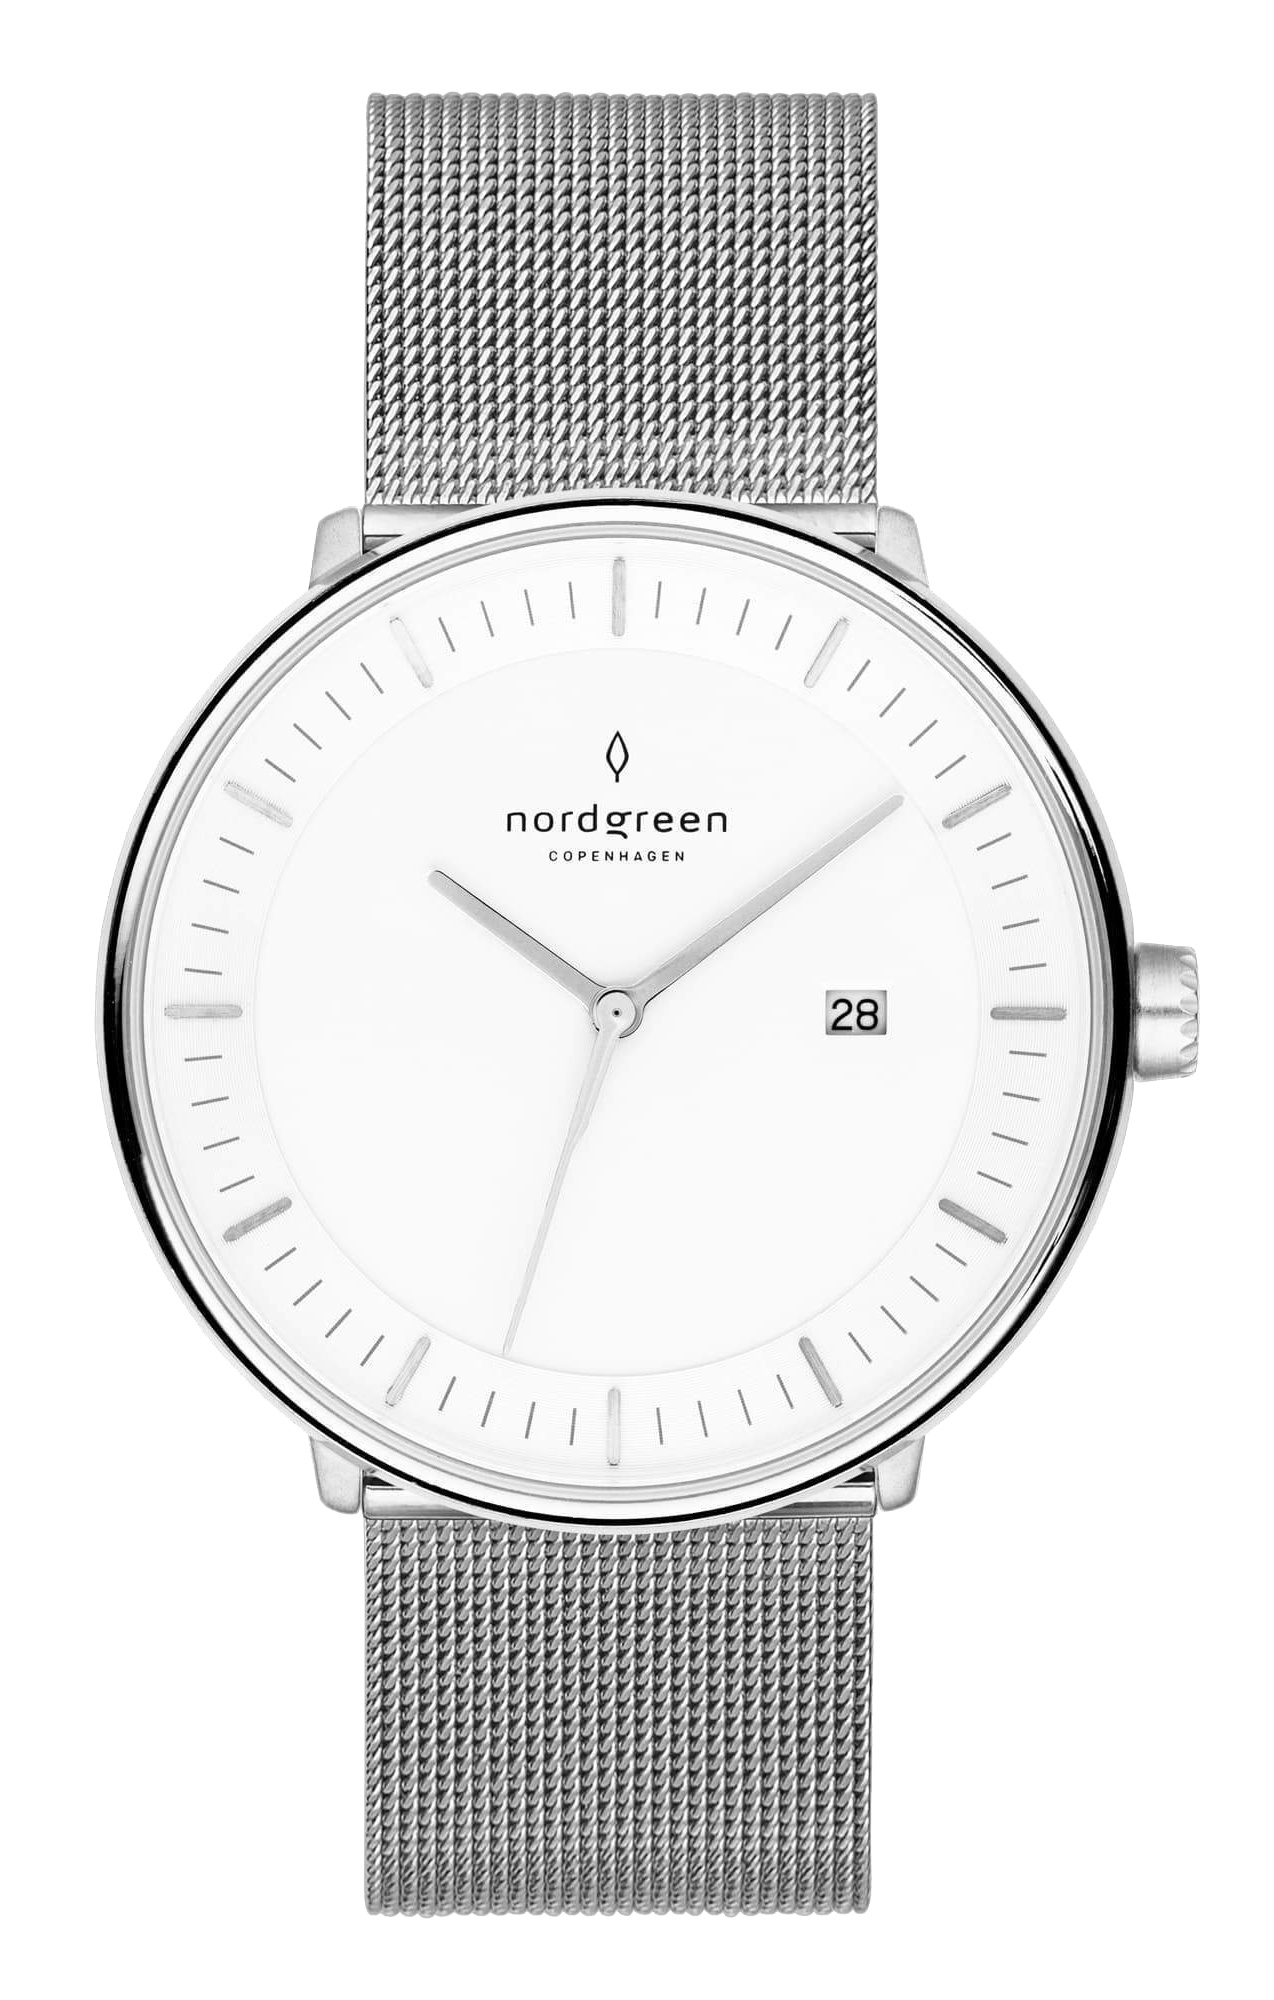 Nordgreen Philosopher silver mesh strap watch